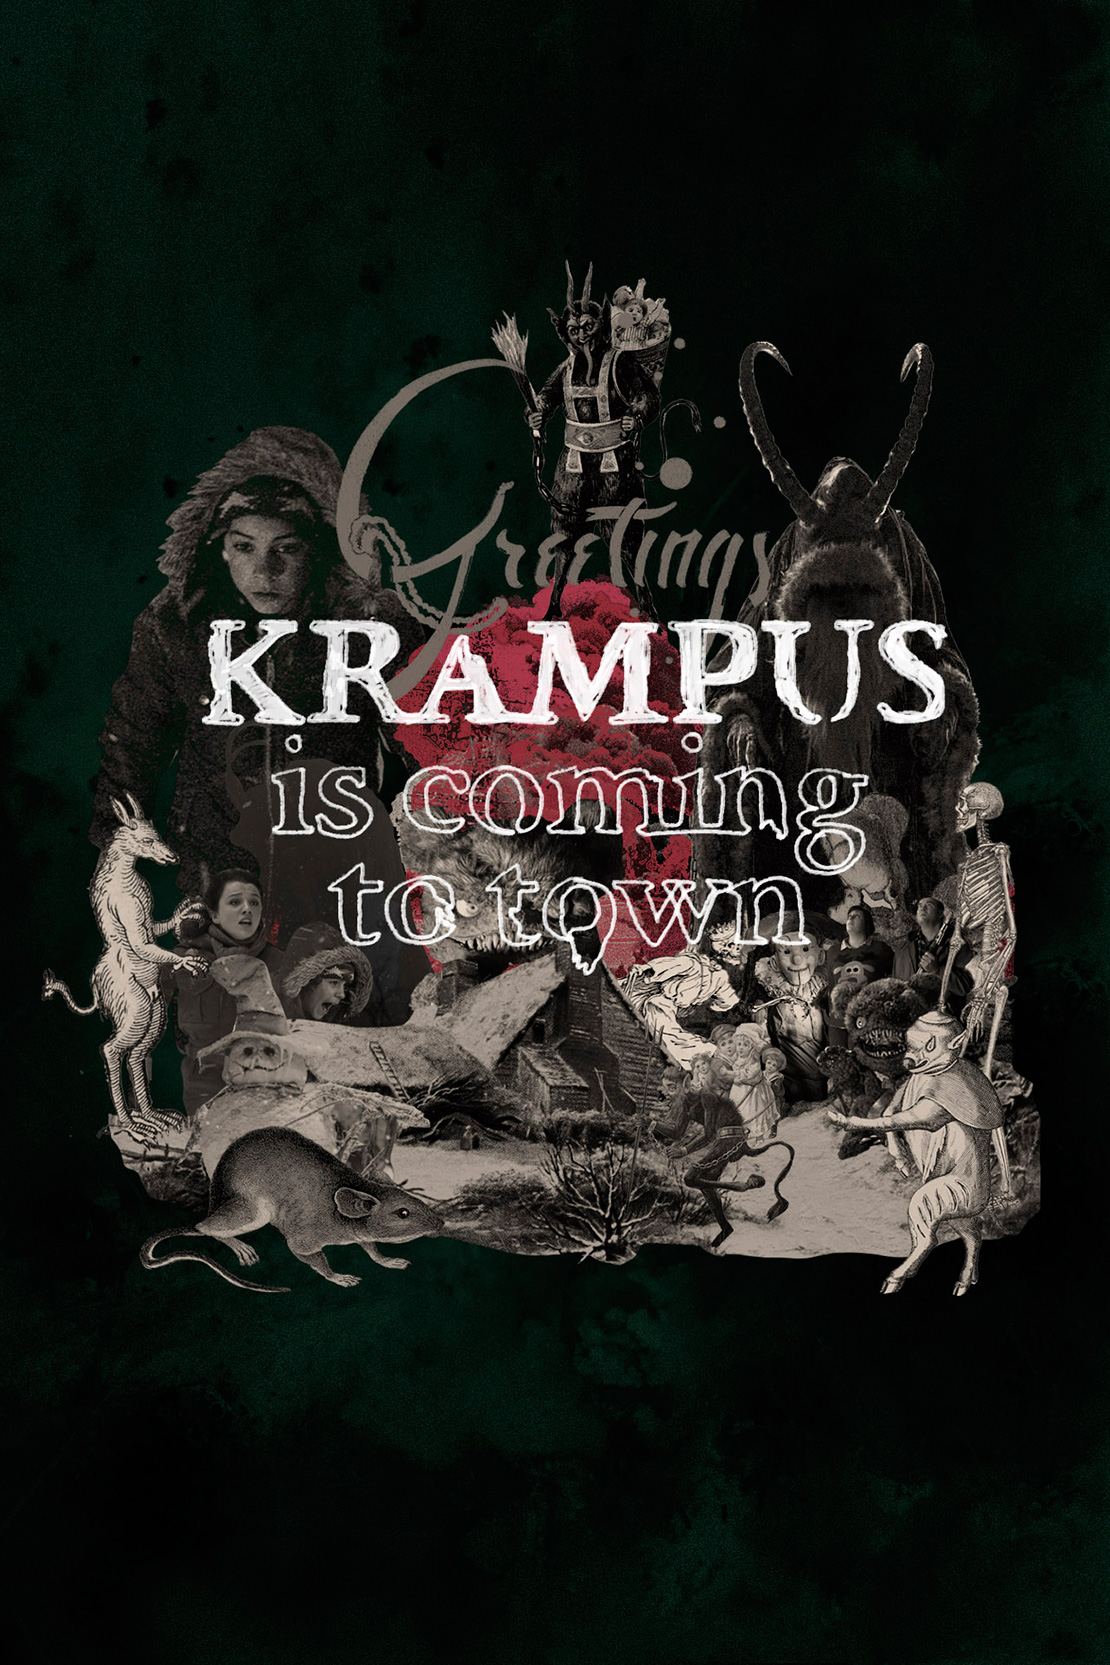 Krampus_Maxomatic_5